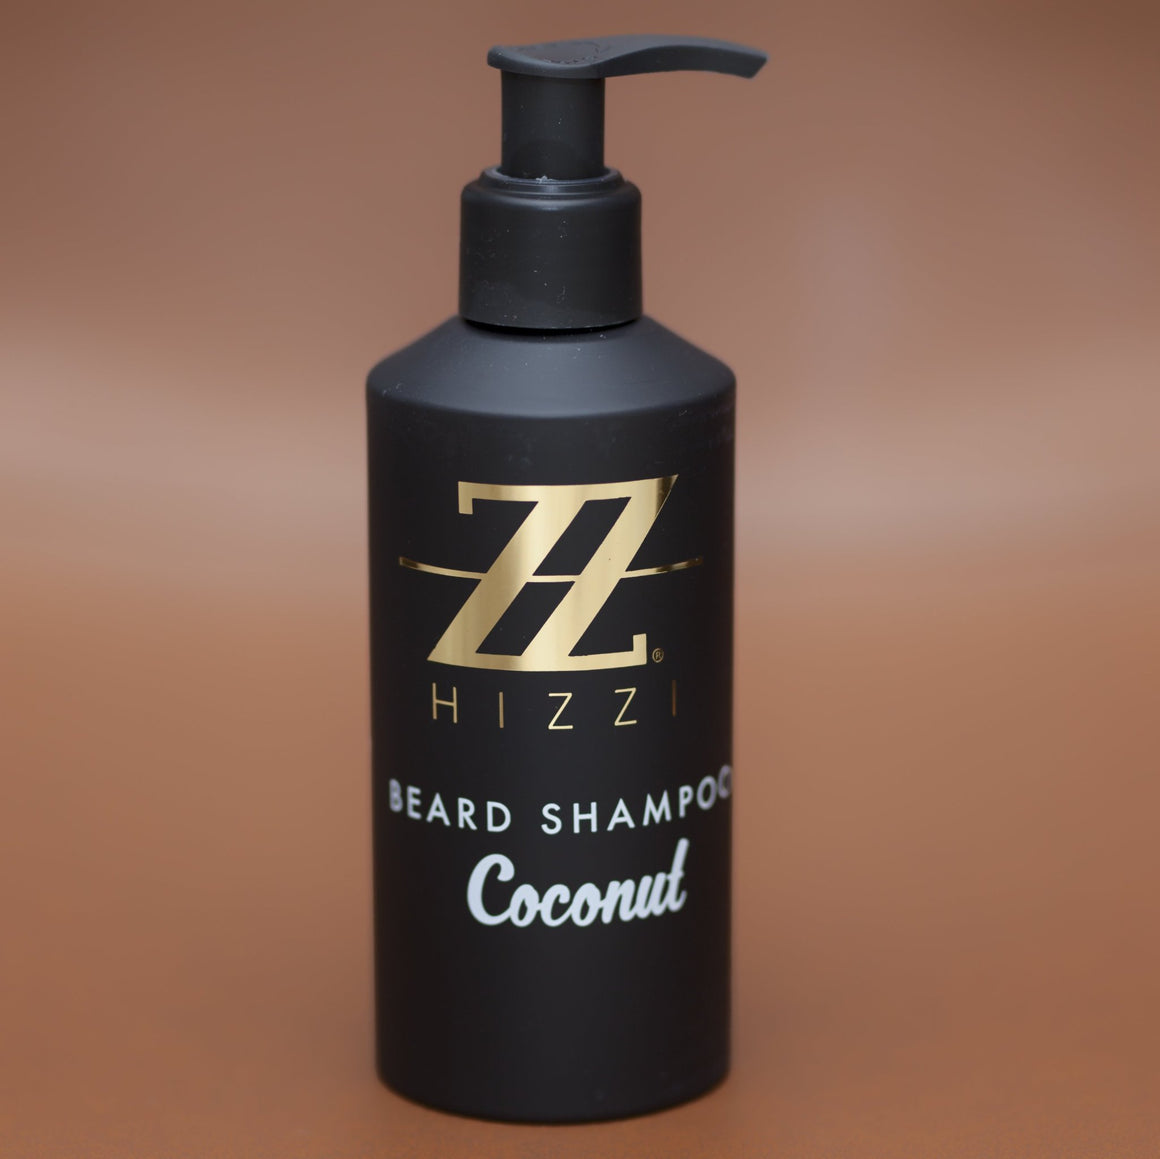 Gentle Coconut Beard Shampoo